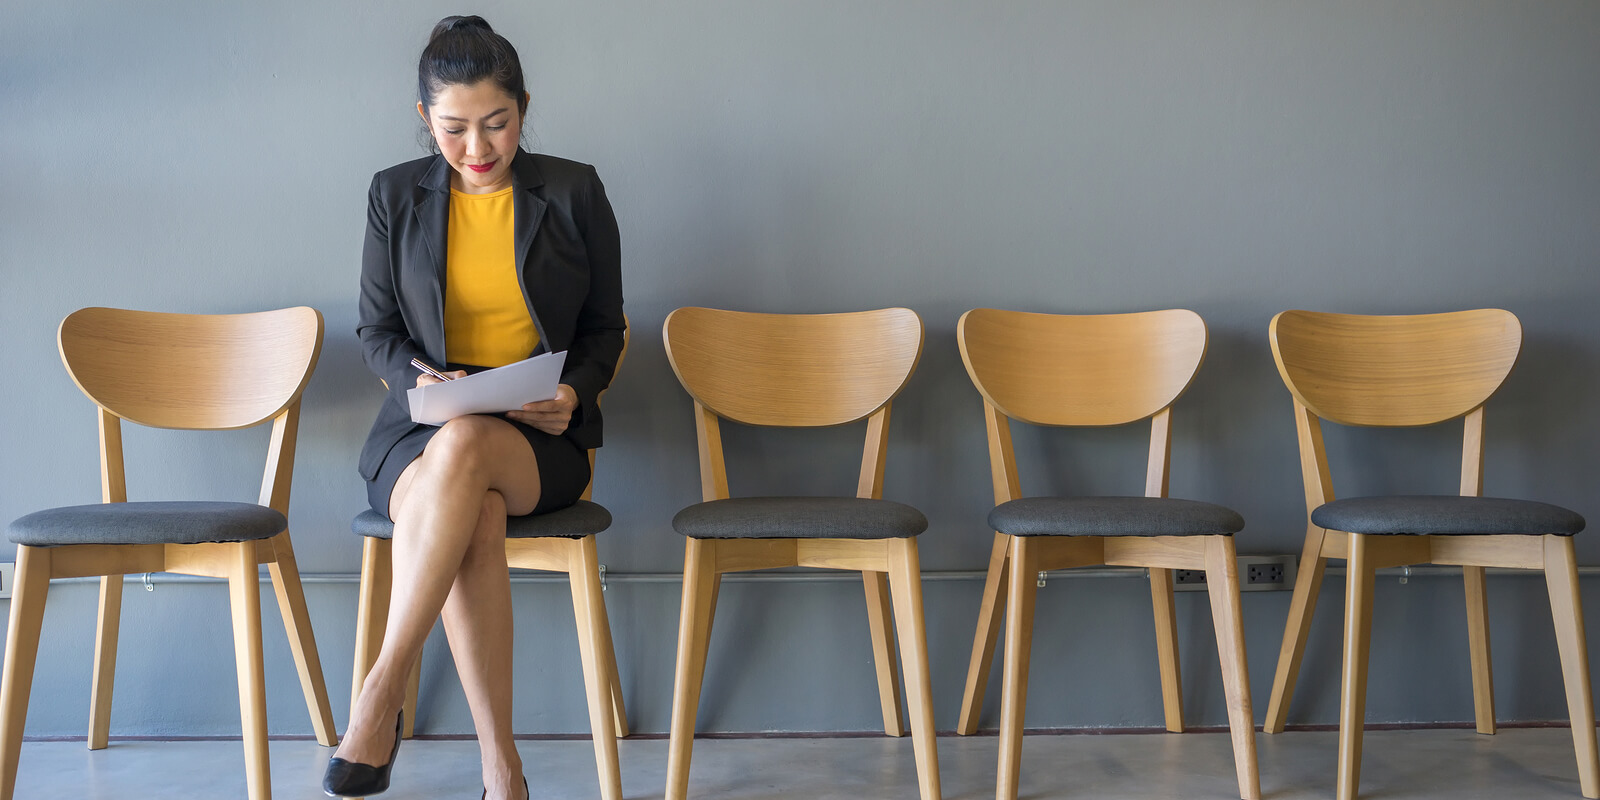 how to answer interview questions about resume gaps